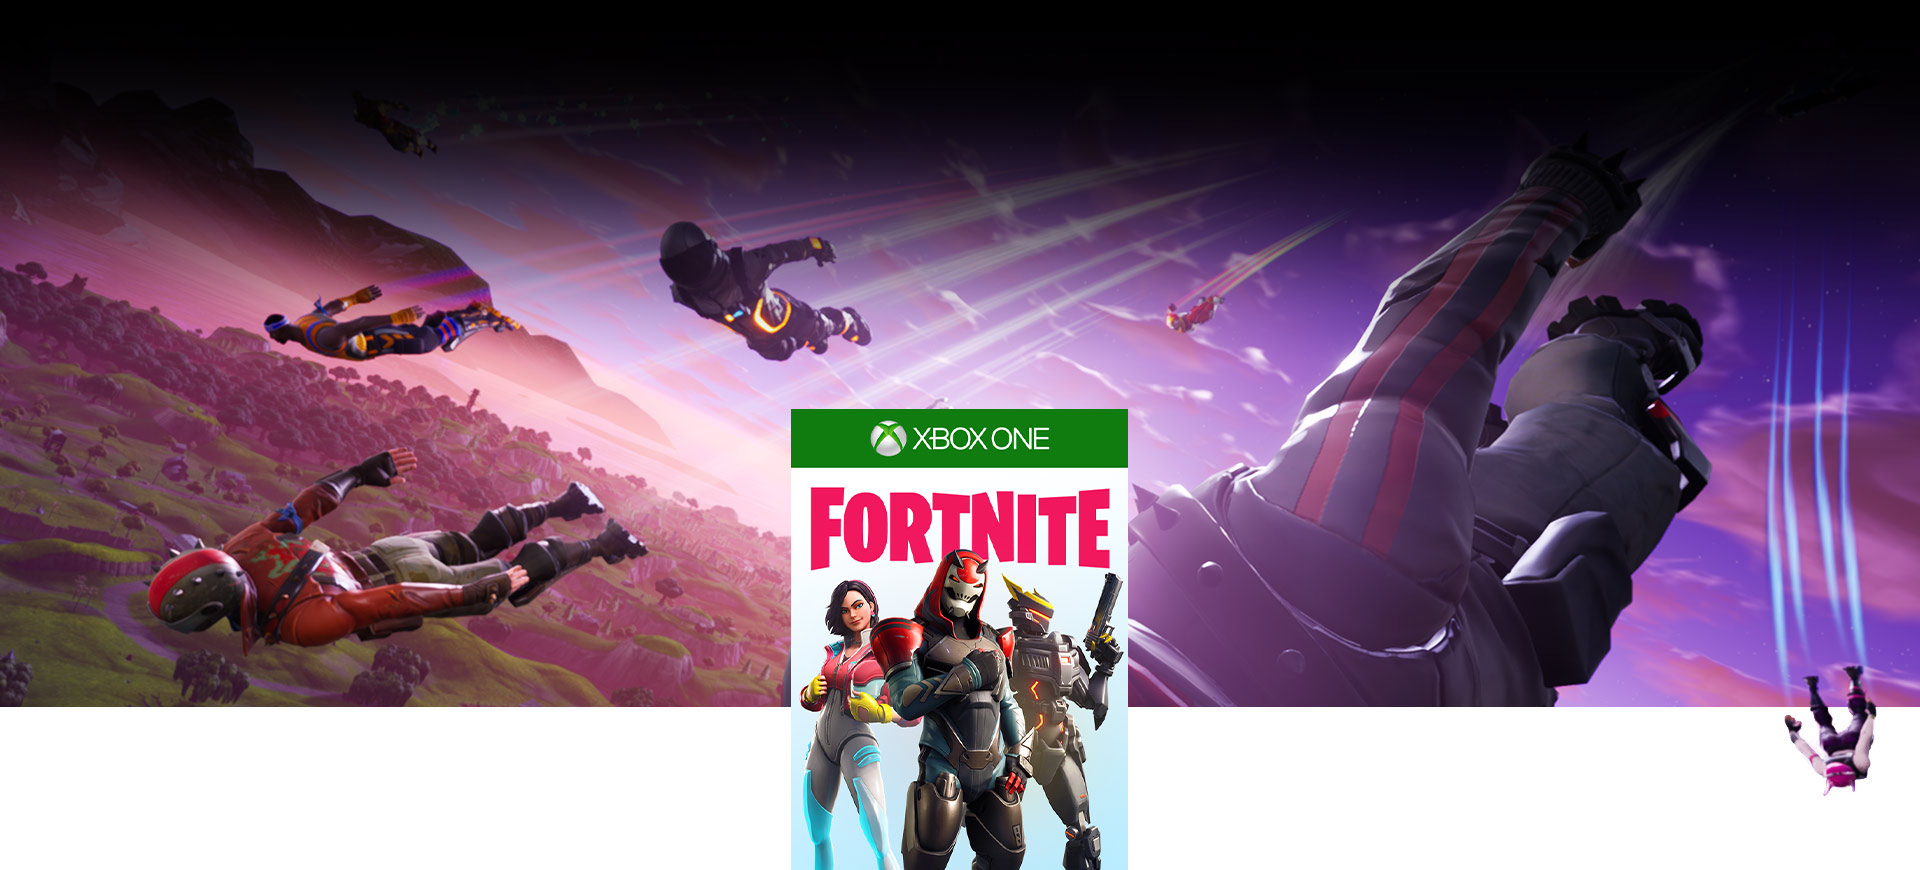 Fortnite boxshot, Fortnite characters skydiving